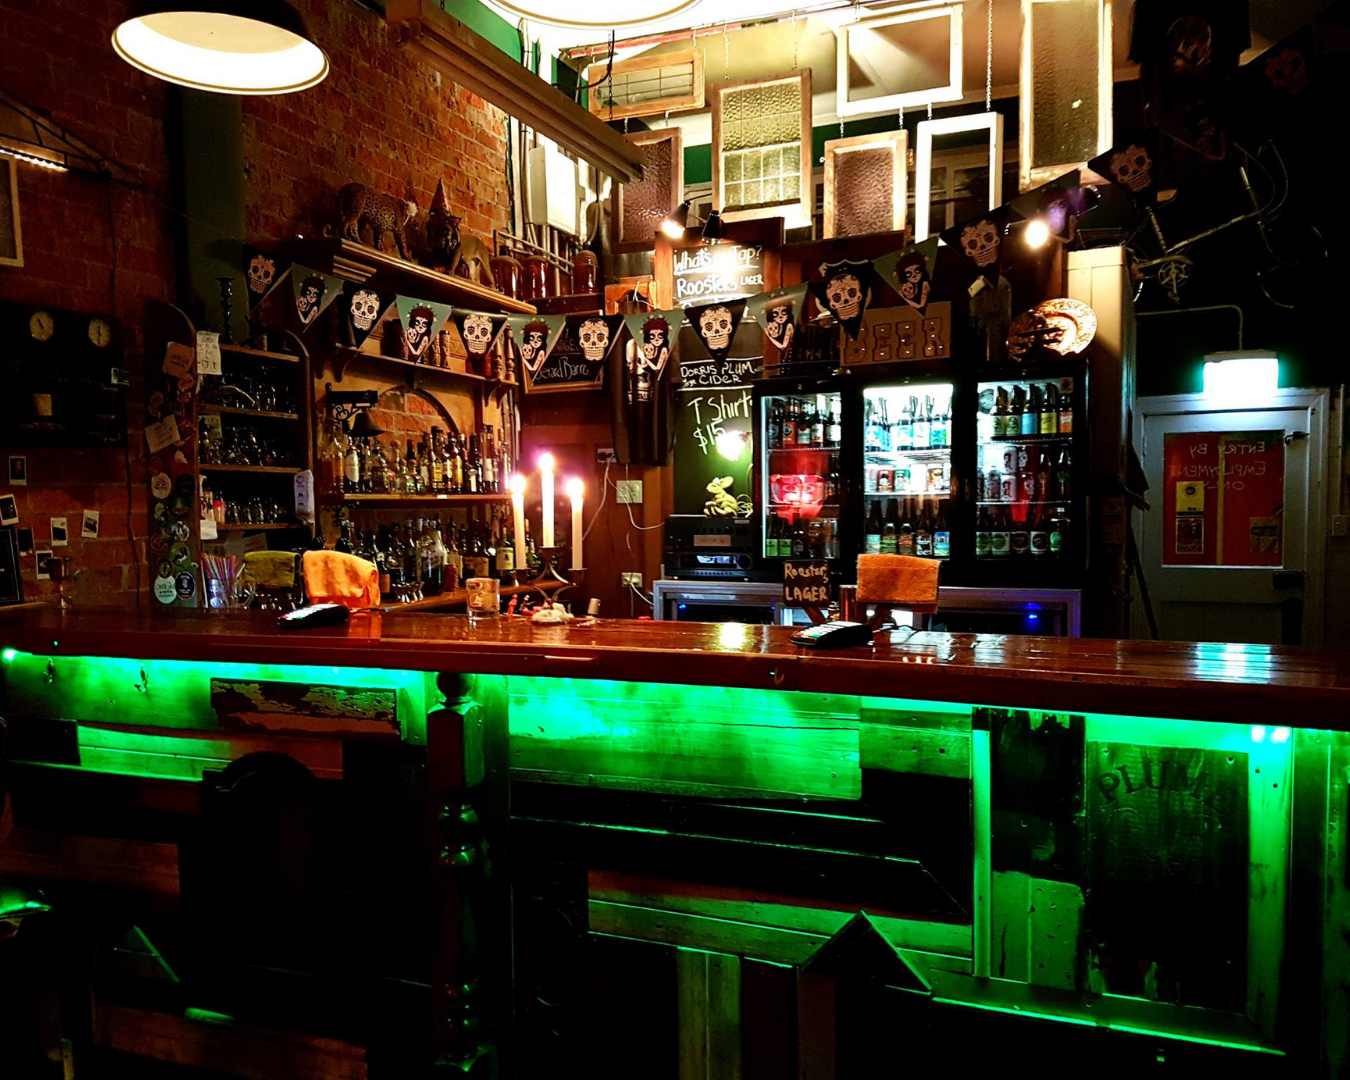 A dimly lit bar with neon lighting under the bar counters